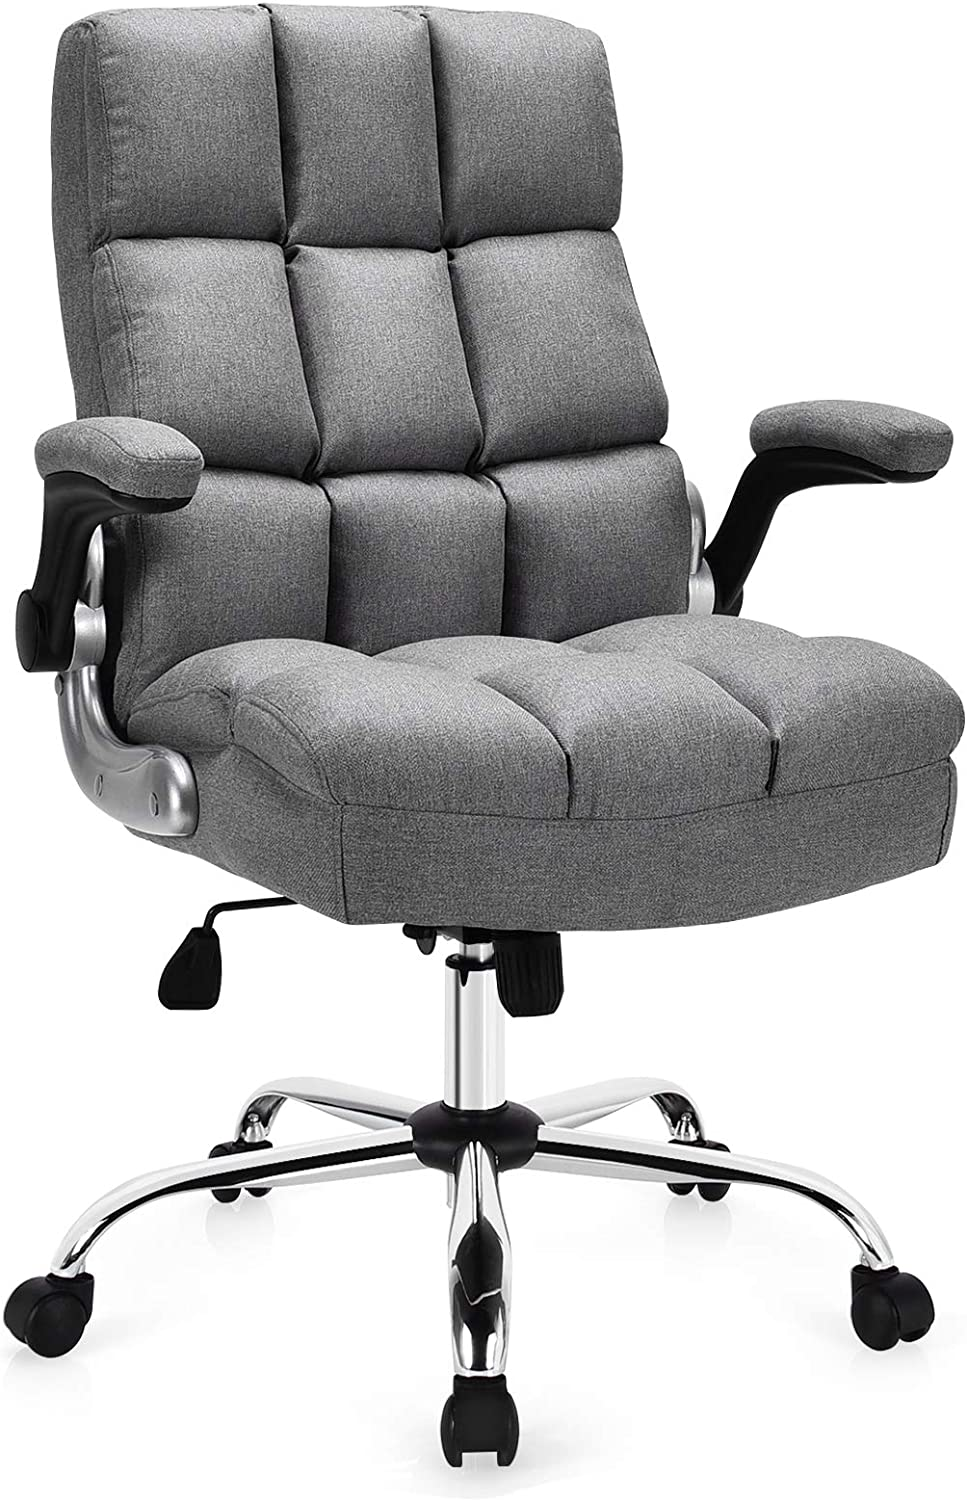 Giantex Executive Office Chair, Big and Tall Ergonomic Computer Chair, Adjustable Tilt Angle and Flip-up Armrest Linen Fabric Upholstered Chair with Thick Padding, High Back Managerial Chair (Grey)